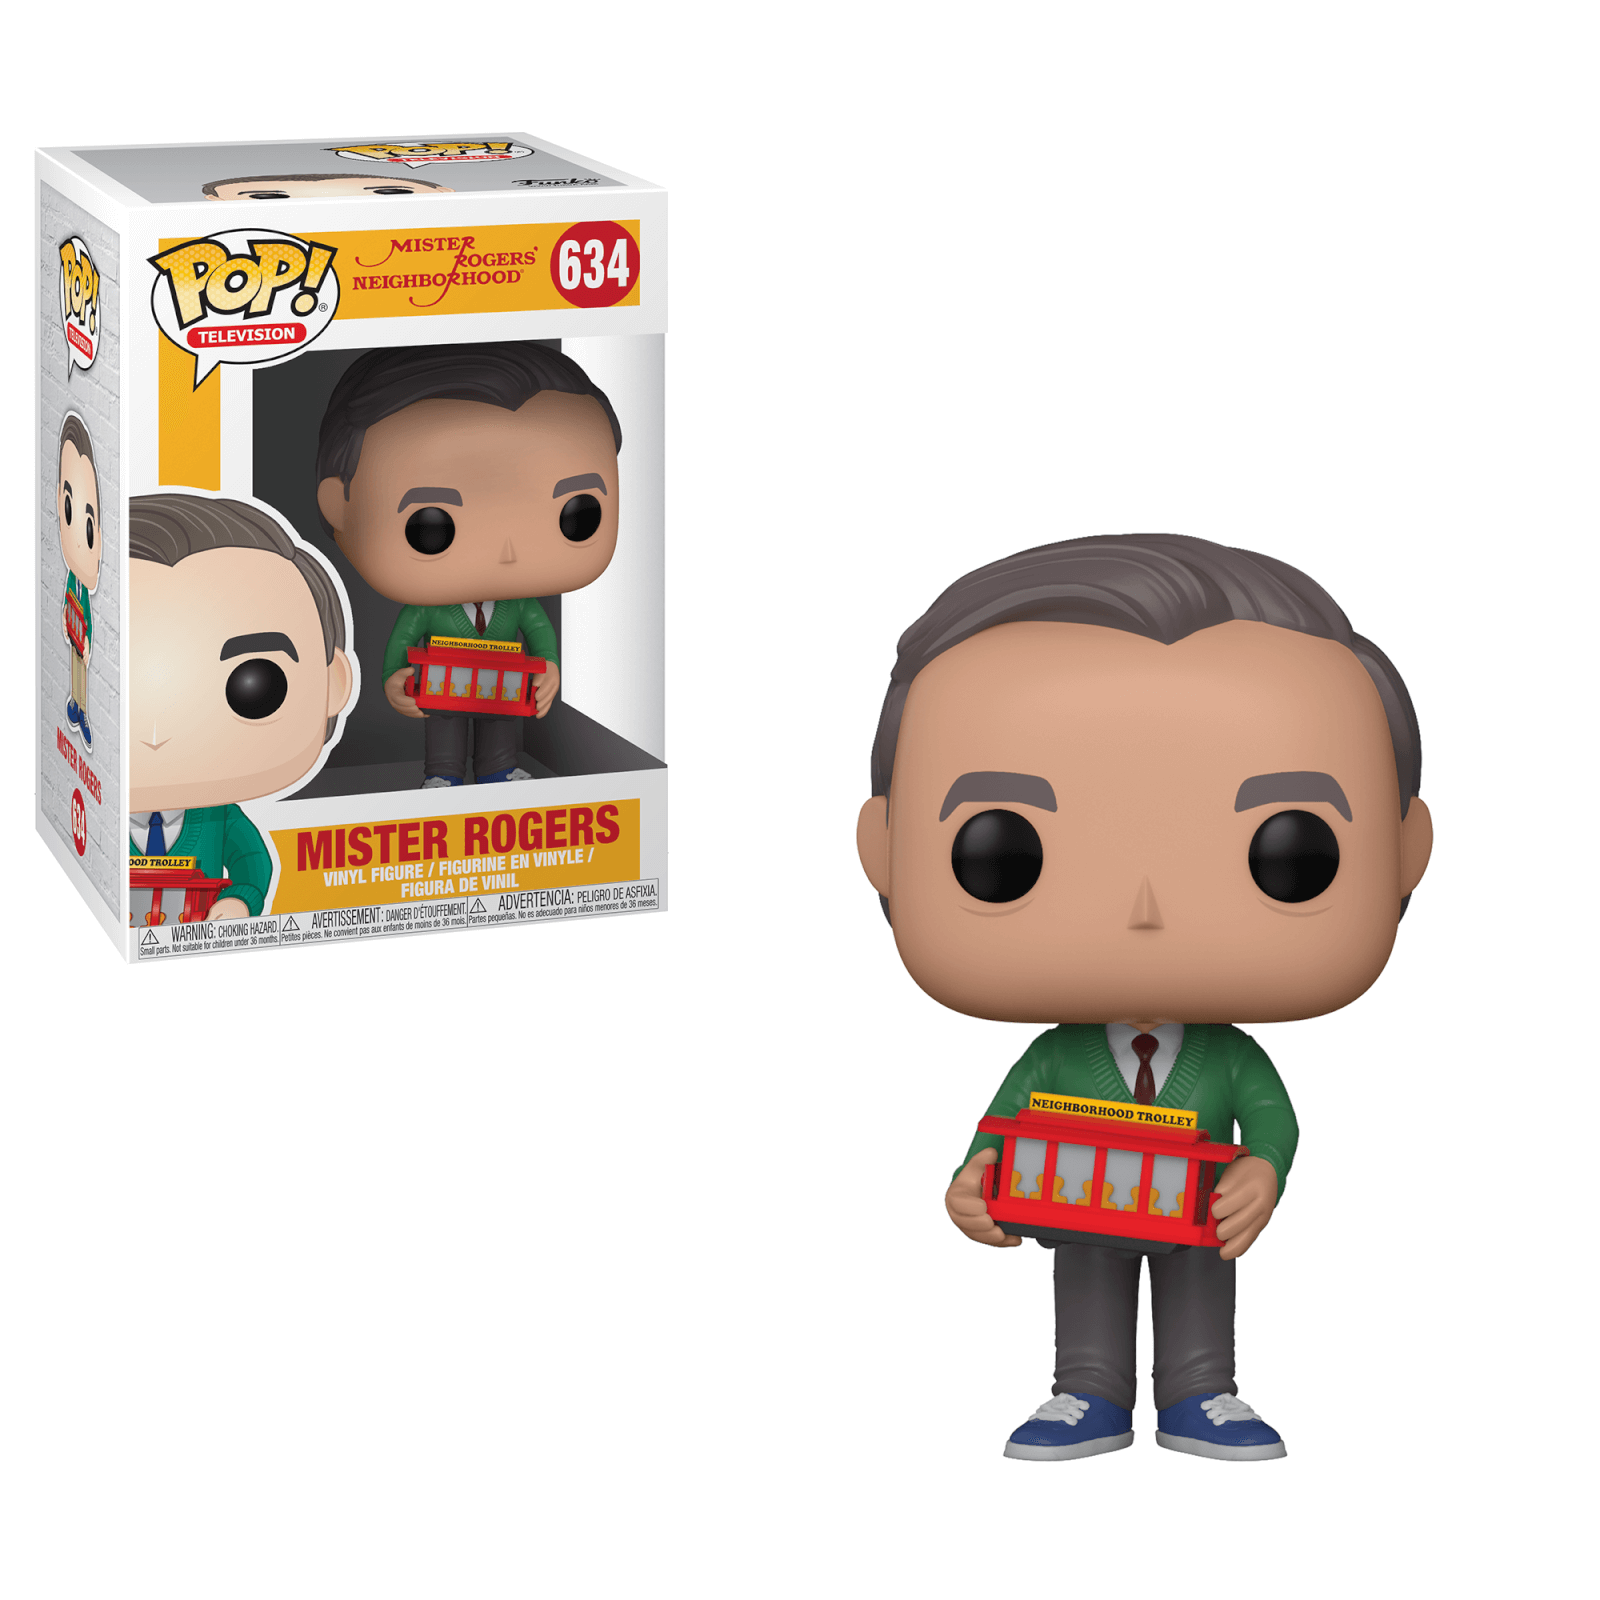 Mr Rogers Pop! Vinyl Figure